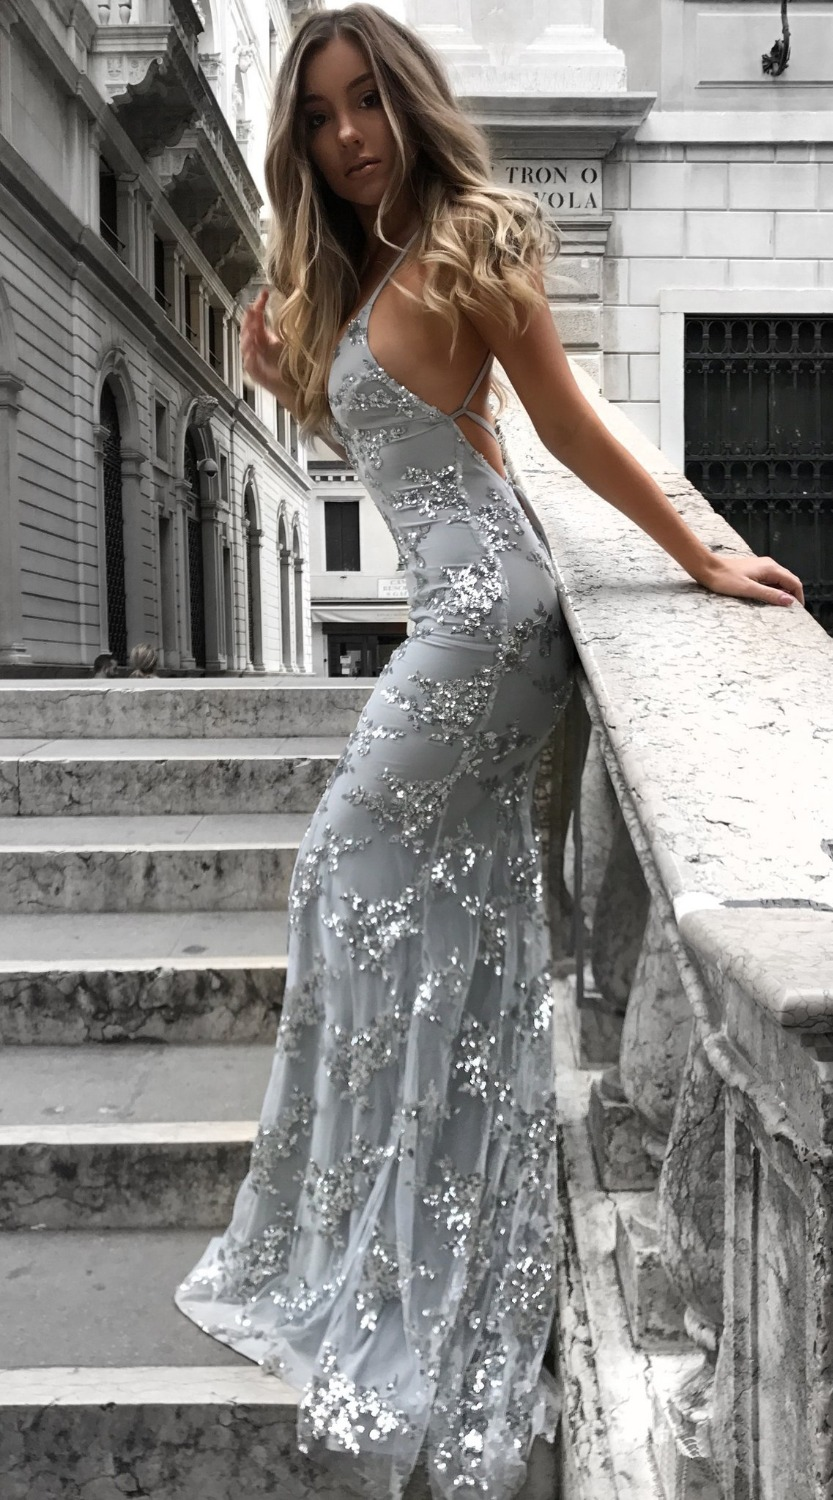 High Quality Wedding Party Dress Women Backless Sexy Sling V Neck Sequin Dress Prom Gown Long Bridesmaid Dress